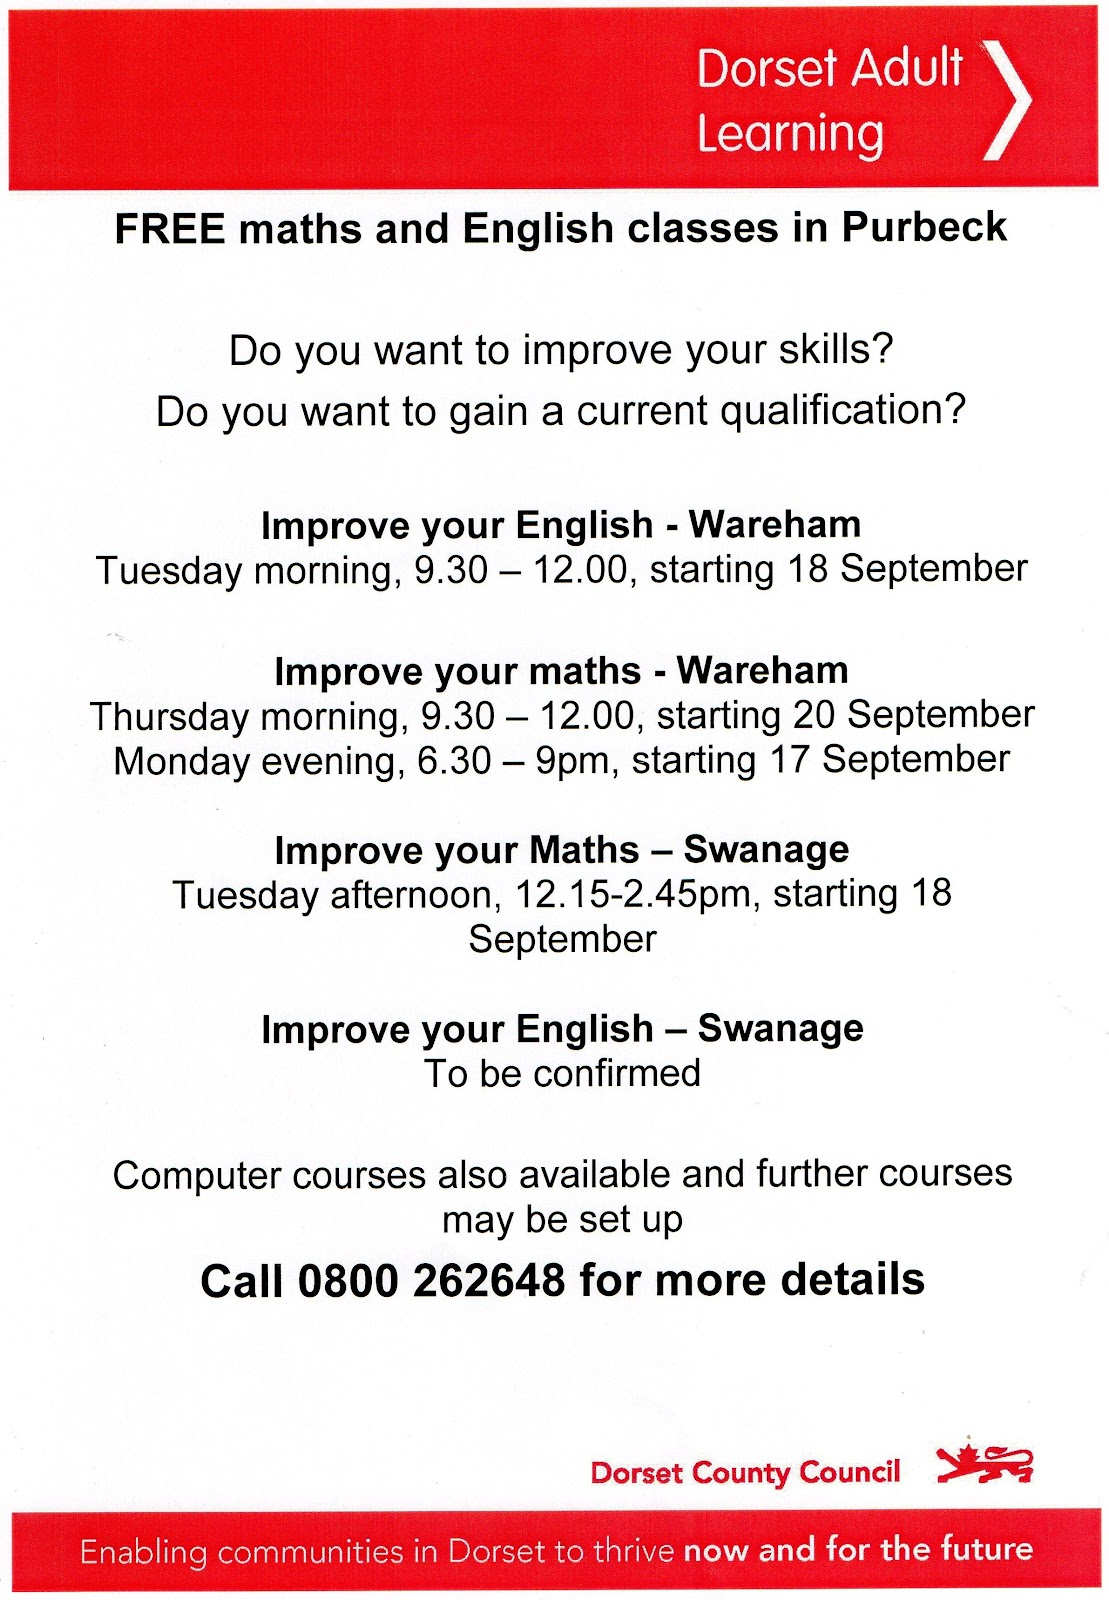 Free Adult Learning Courses. Posted by Bovington HIVE at 11:10